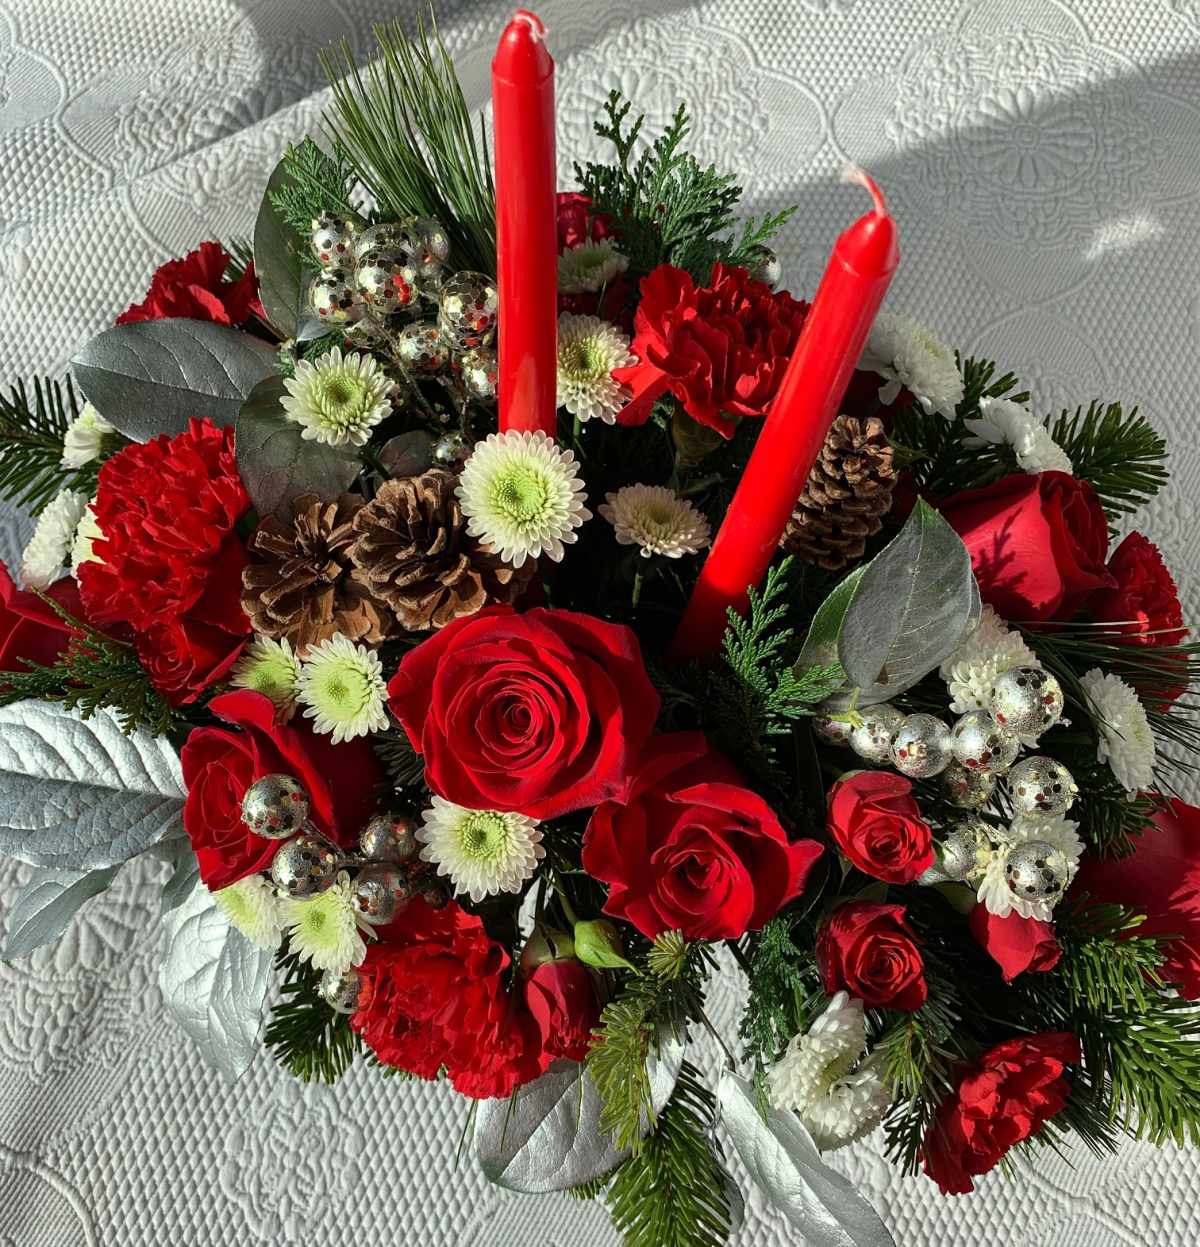 Decorate for the Holidays with Flower Bouquets - Powered by Mom